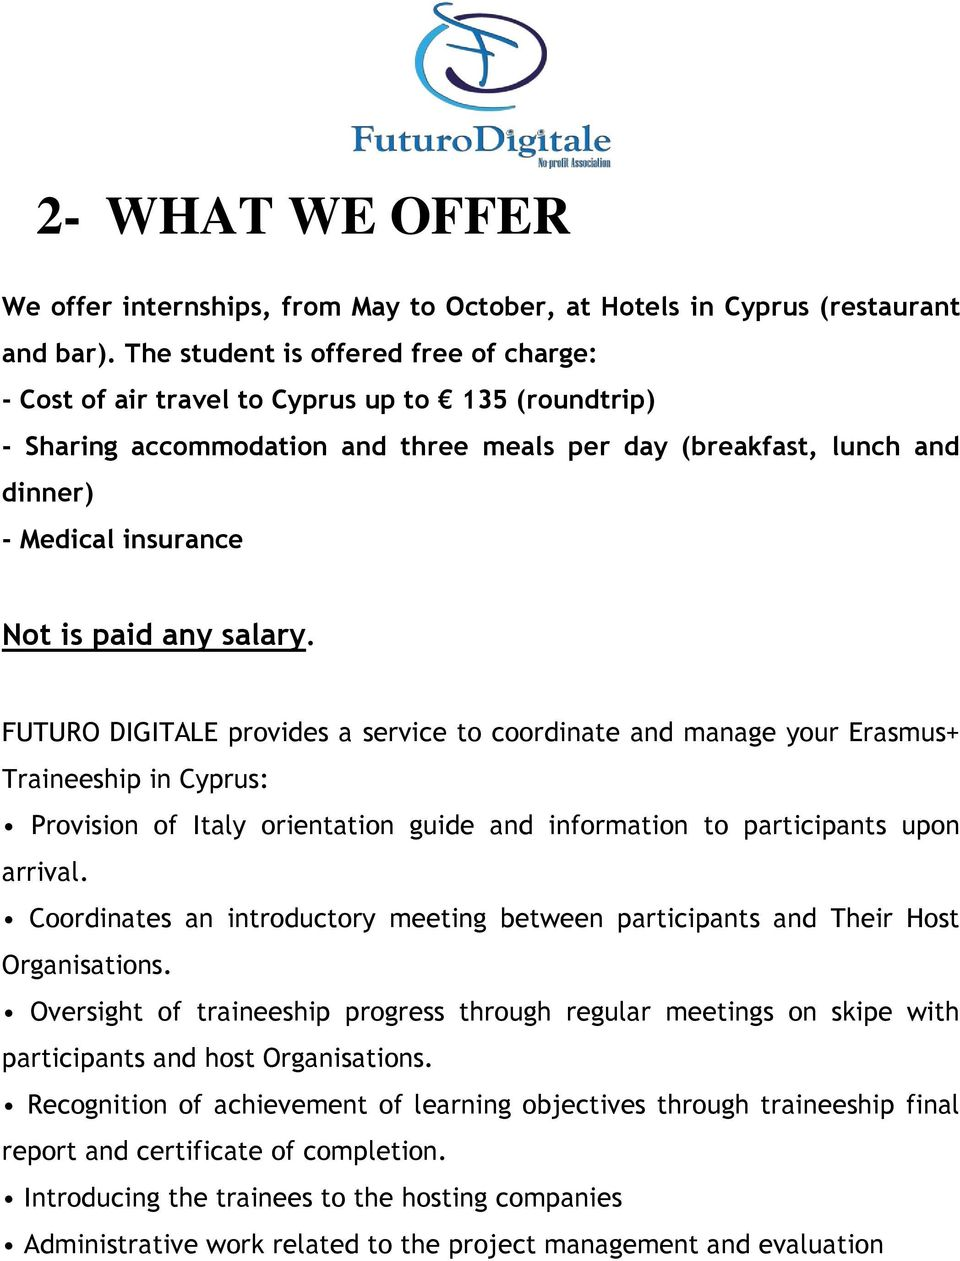 paid any salary. FUTURO DIGITALE provides a service to coordinate and manage your Erasmus+ Traineeship in Cyprus: Provision of Italy orientation guide and information to participants upon arrival.